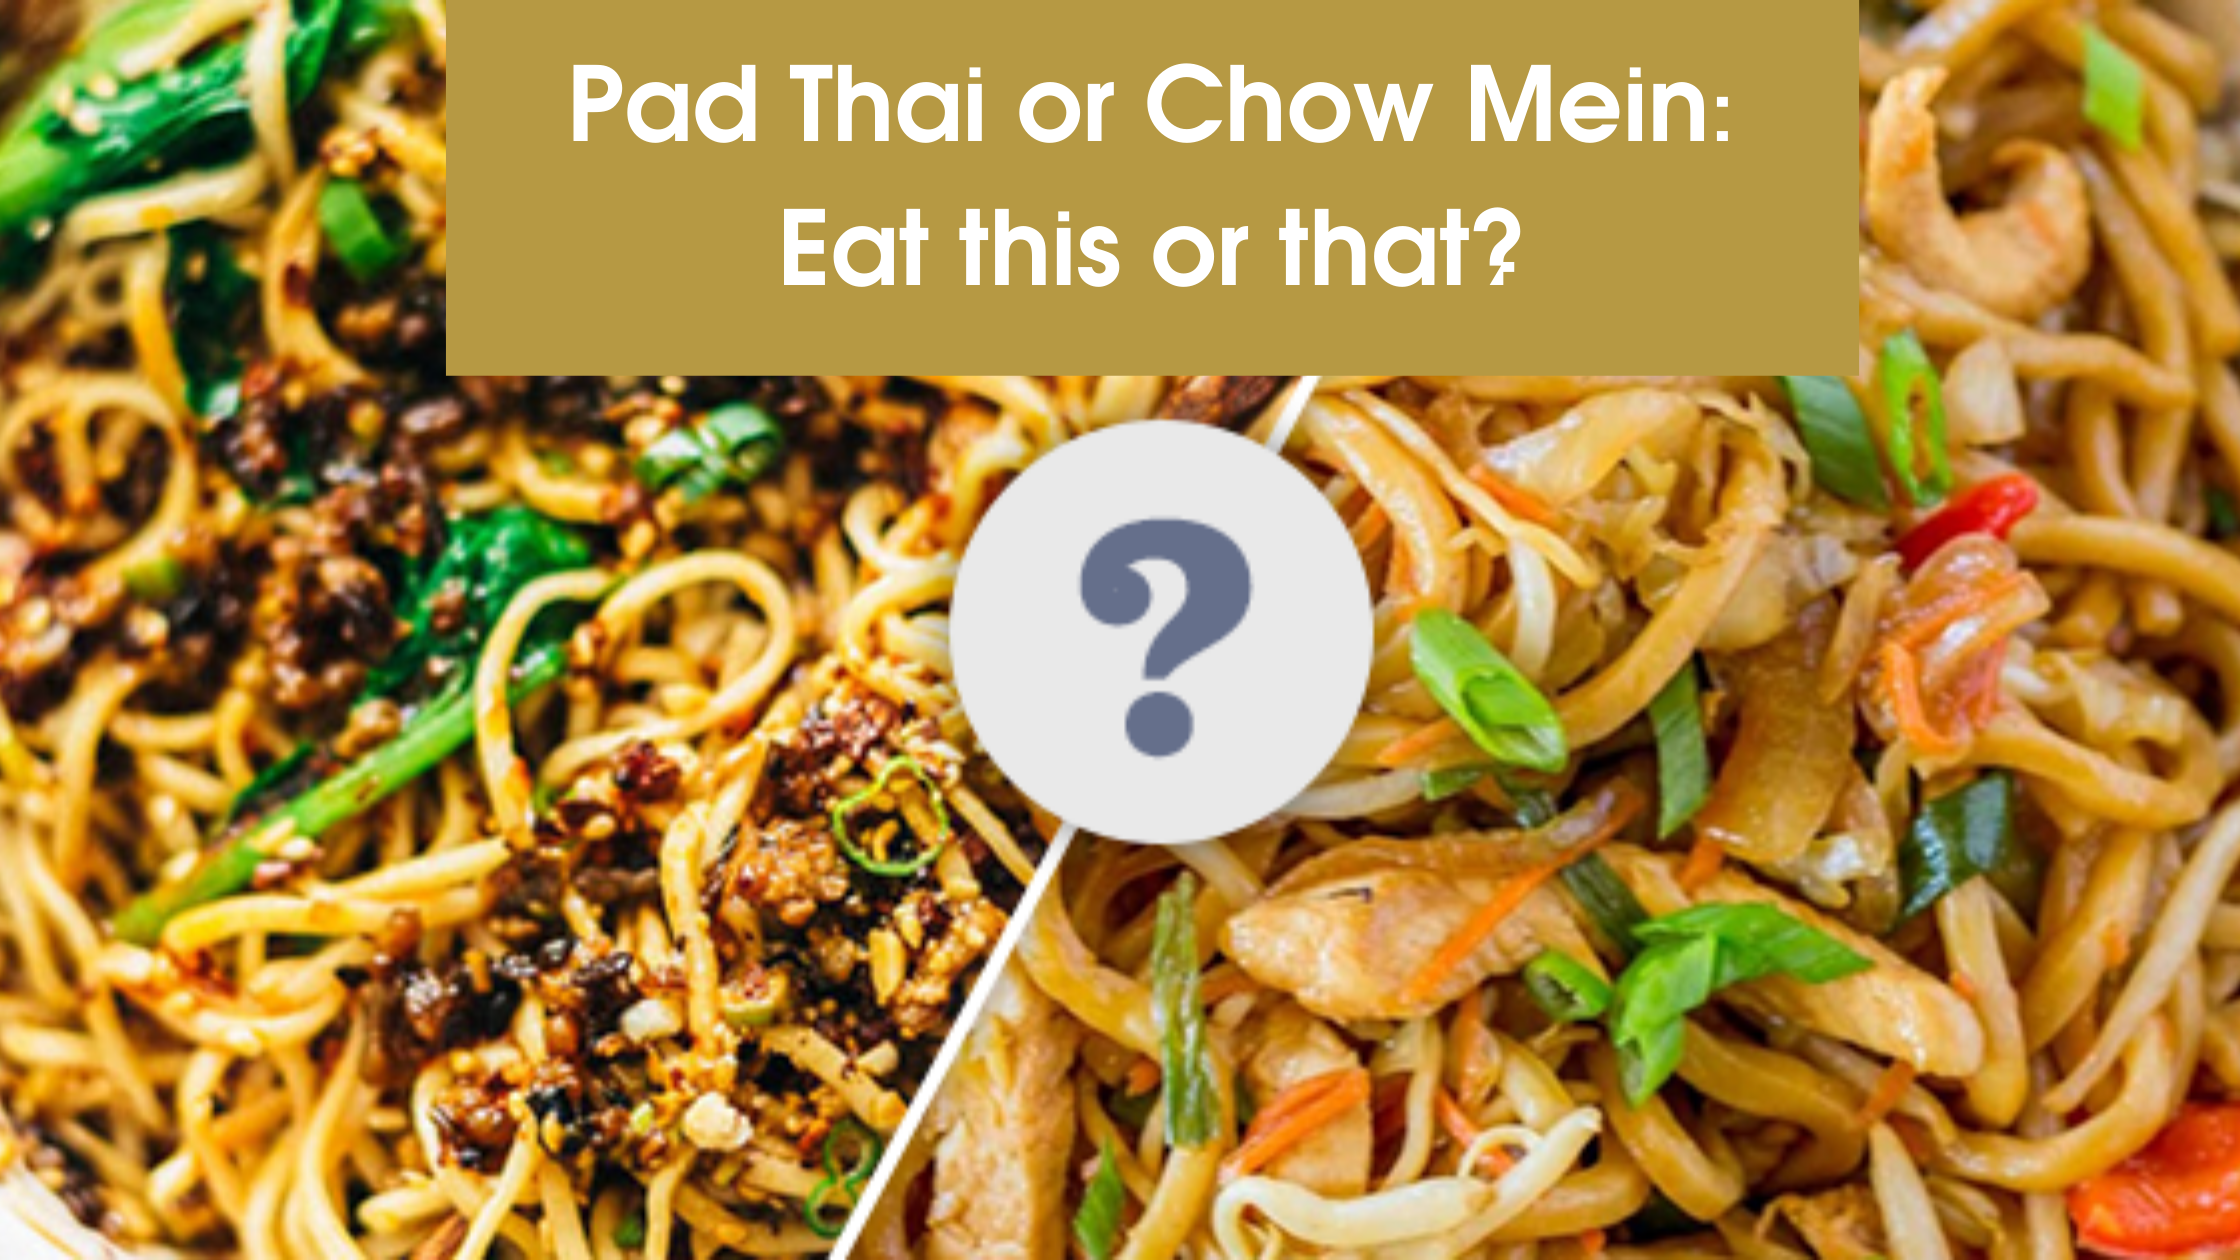 Pad Thai or Chow Mein Eat this or that 2